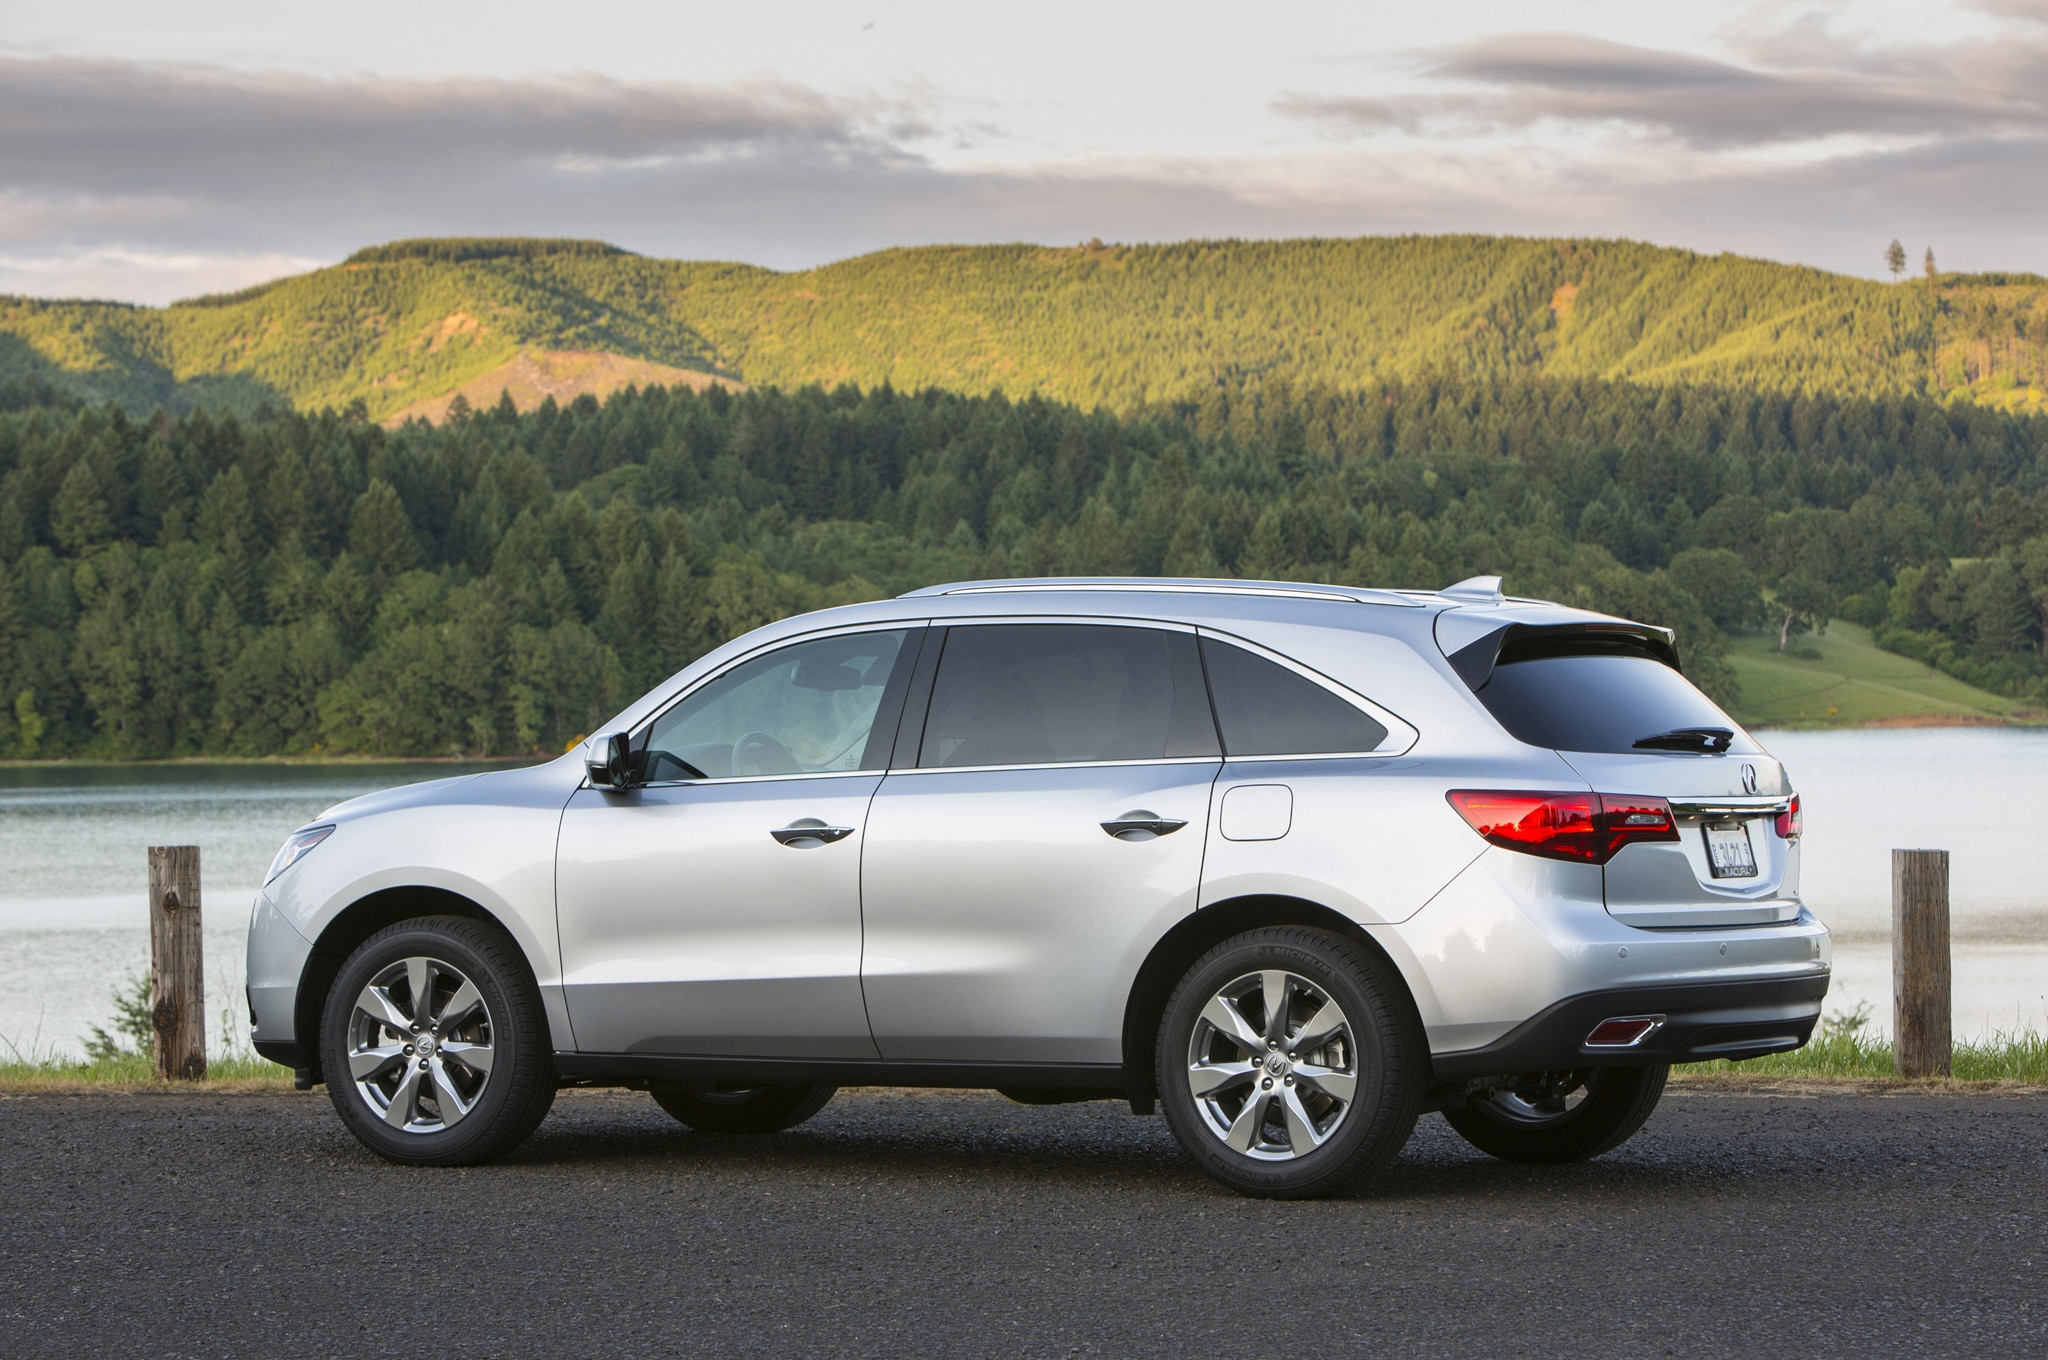 2015 acura mdx priced at 43 460 automobile magazine. Black Bedroom Furniture Sets. Home Design Ideas